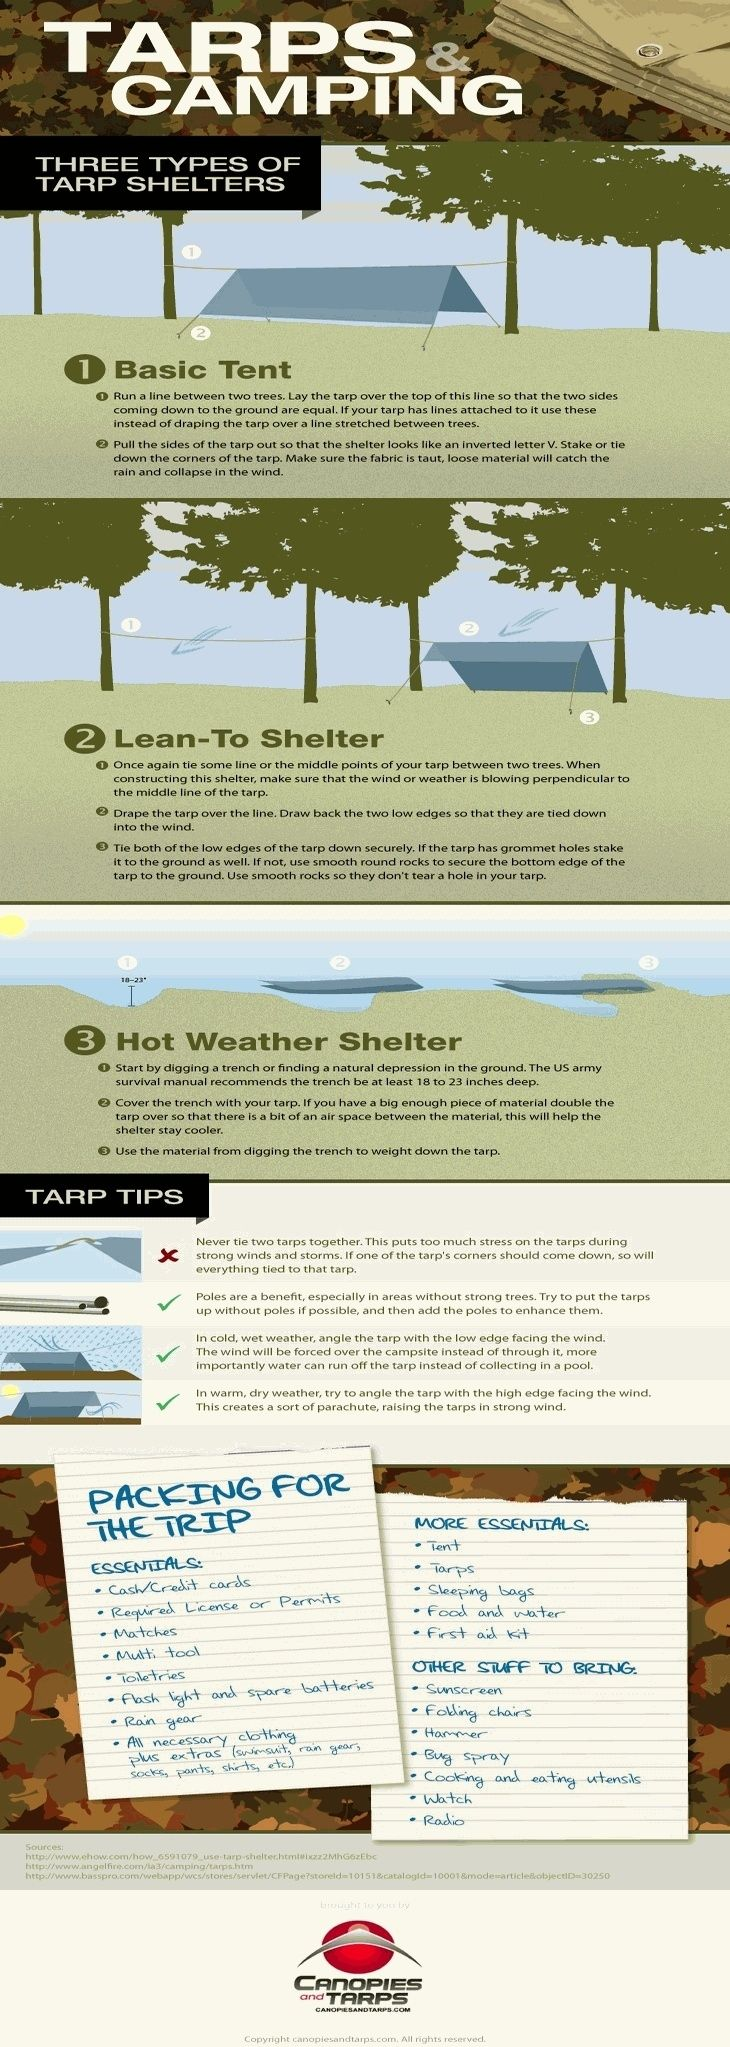 22 Absolutely Essential Diagrams You Need For Camping | Camping In The Great Outdoors | Pinterest | Camping, Camping hacks and Camping survival